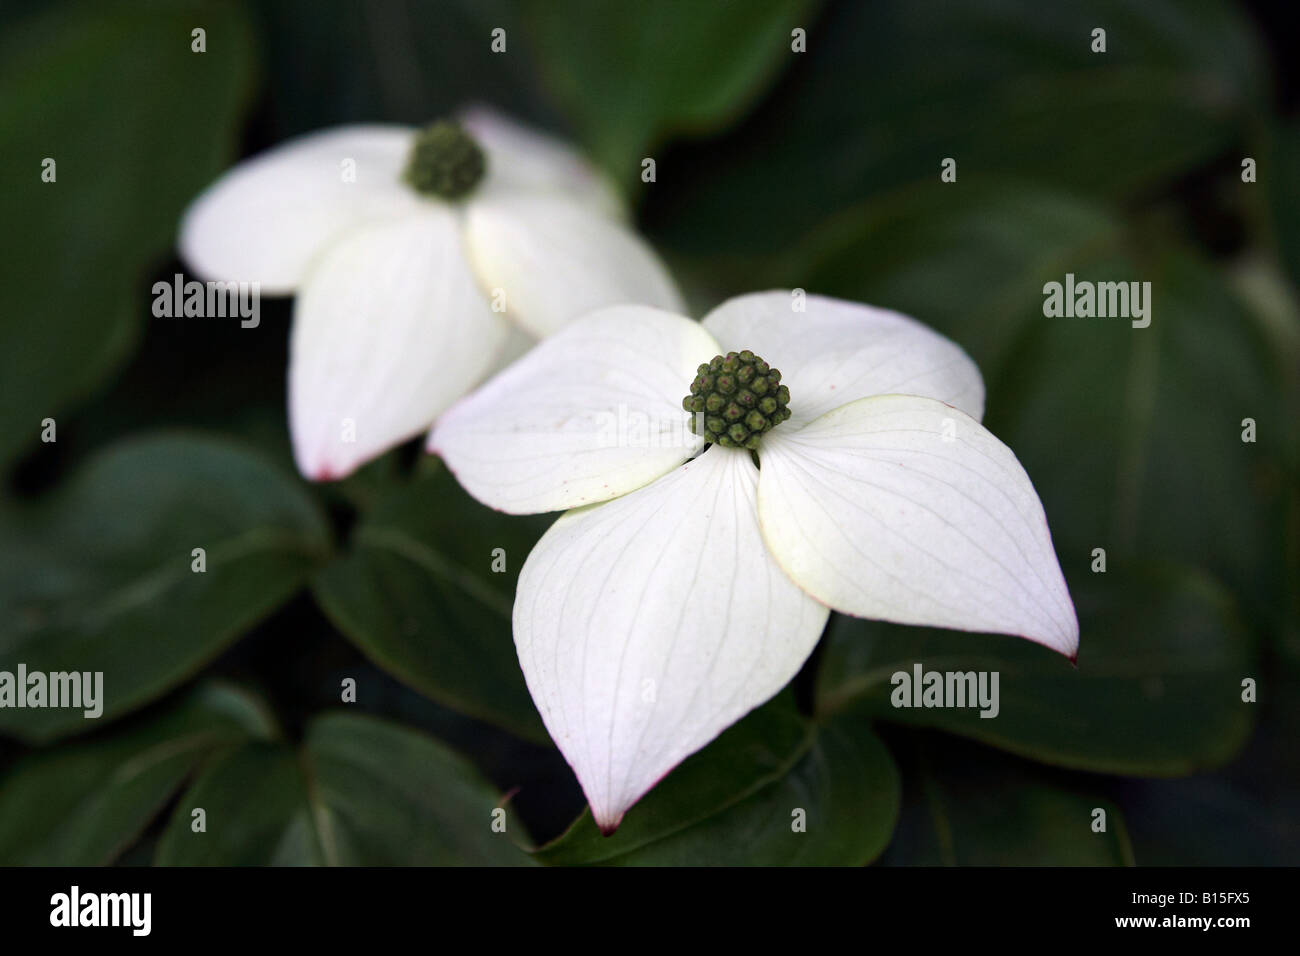 Close Up With Two Four Petals White Flowers Dark Green Foliage Stock